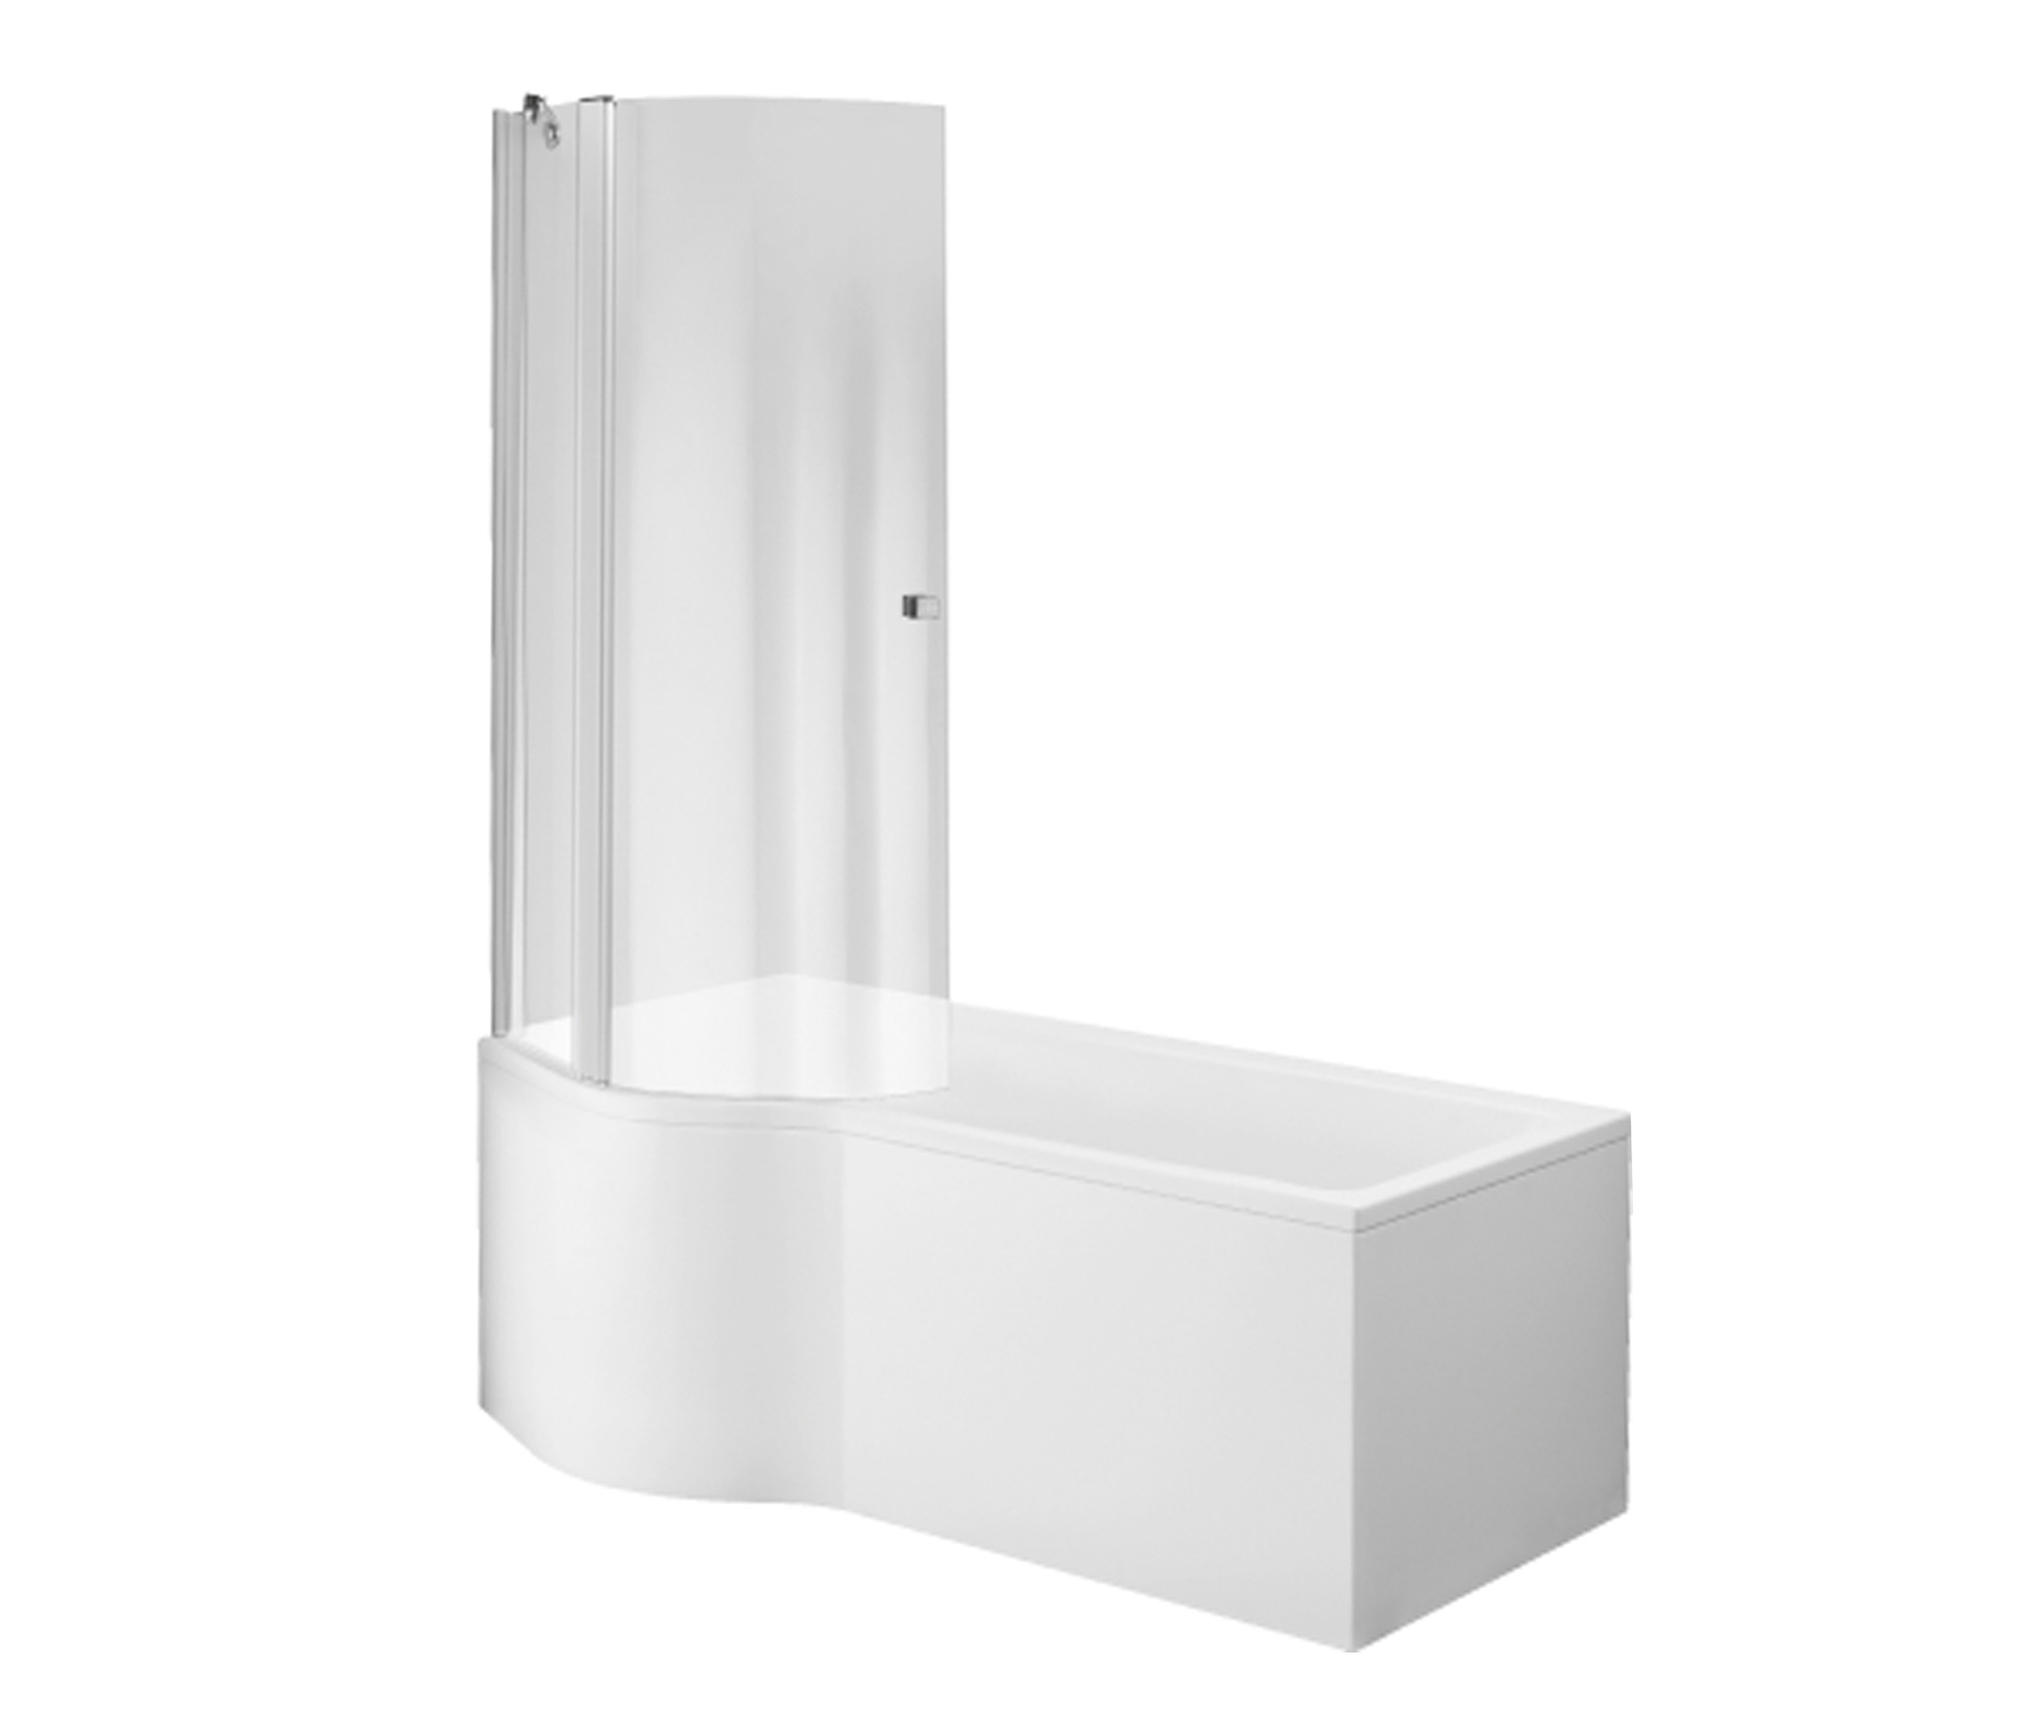 Subway Badewanne Subway Badewanne Badewannen Von Villeroy And Boch Architonic